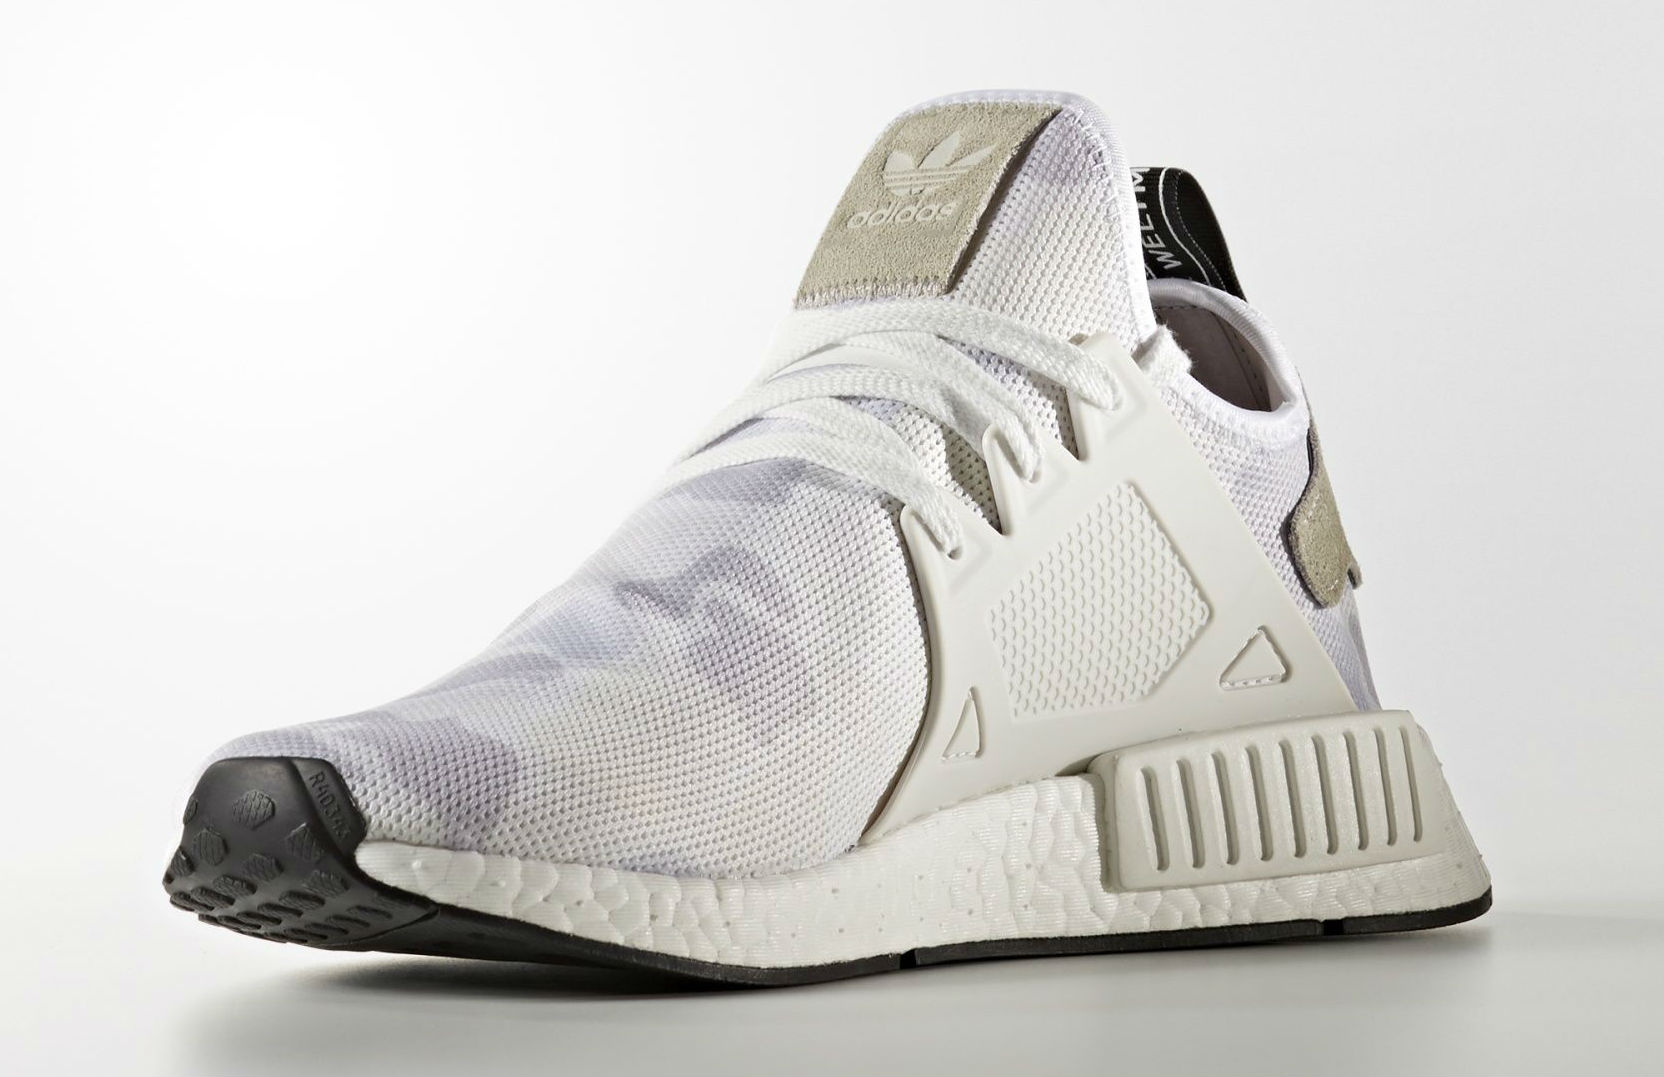 XinmOOn * ADIDAS NMD XR1 W PK BB2370 編織雪花黑灰白| Yahoo